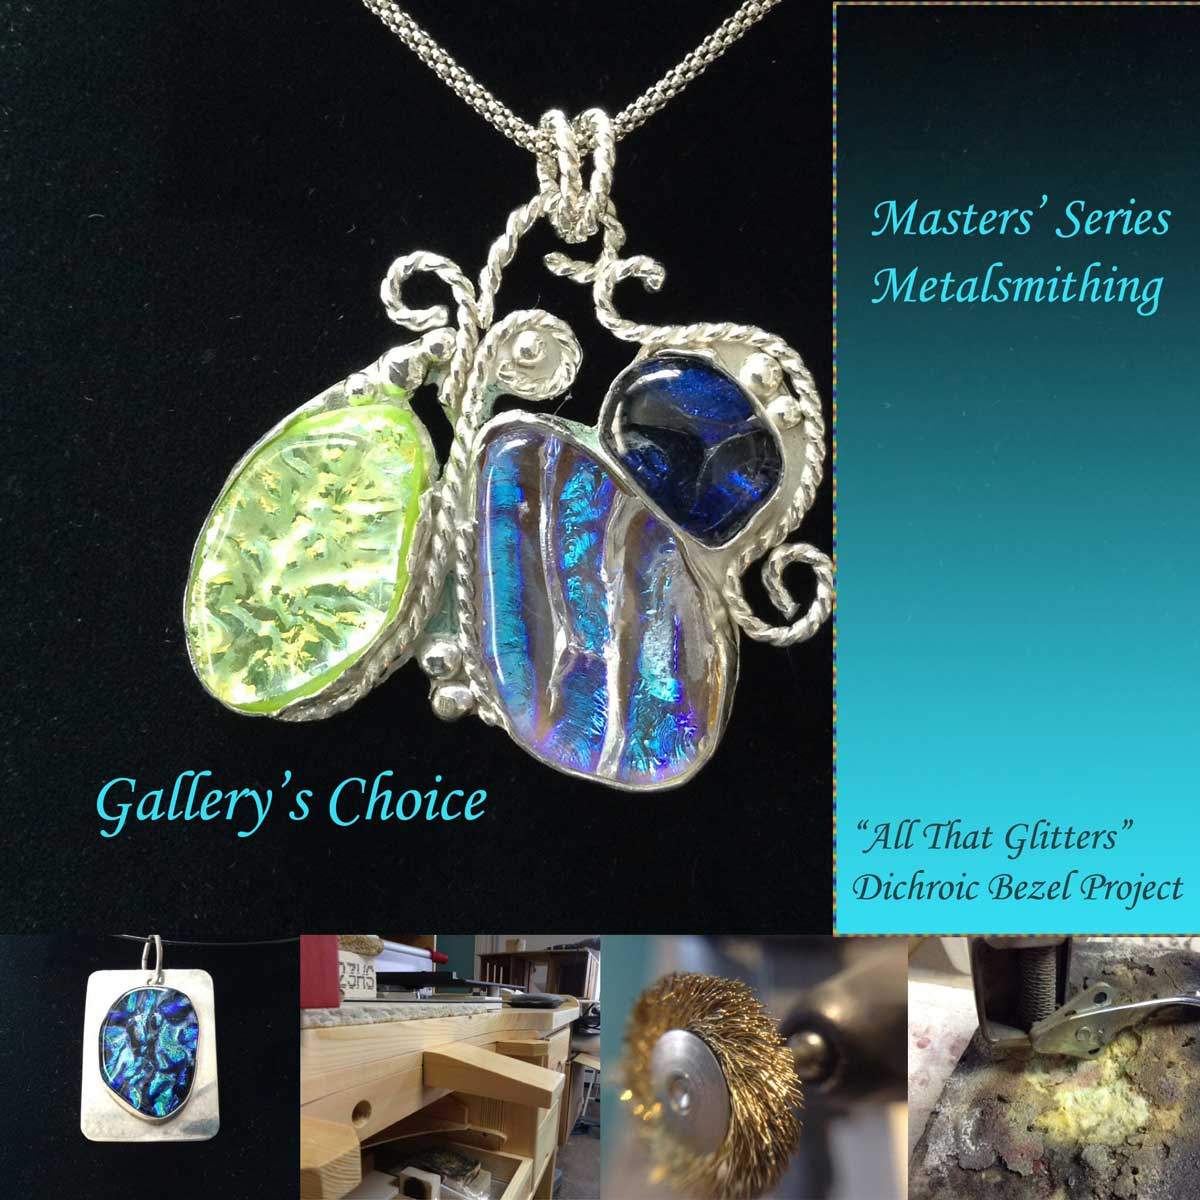 Metalsmithing All That Glitters